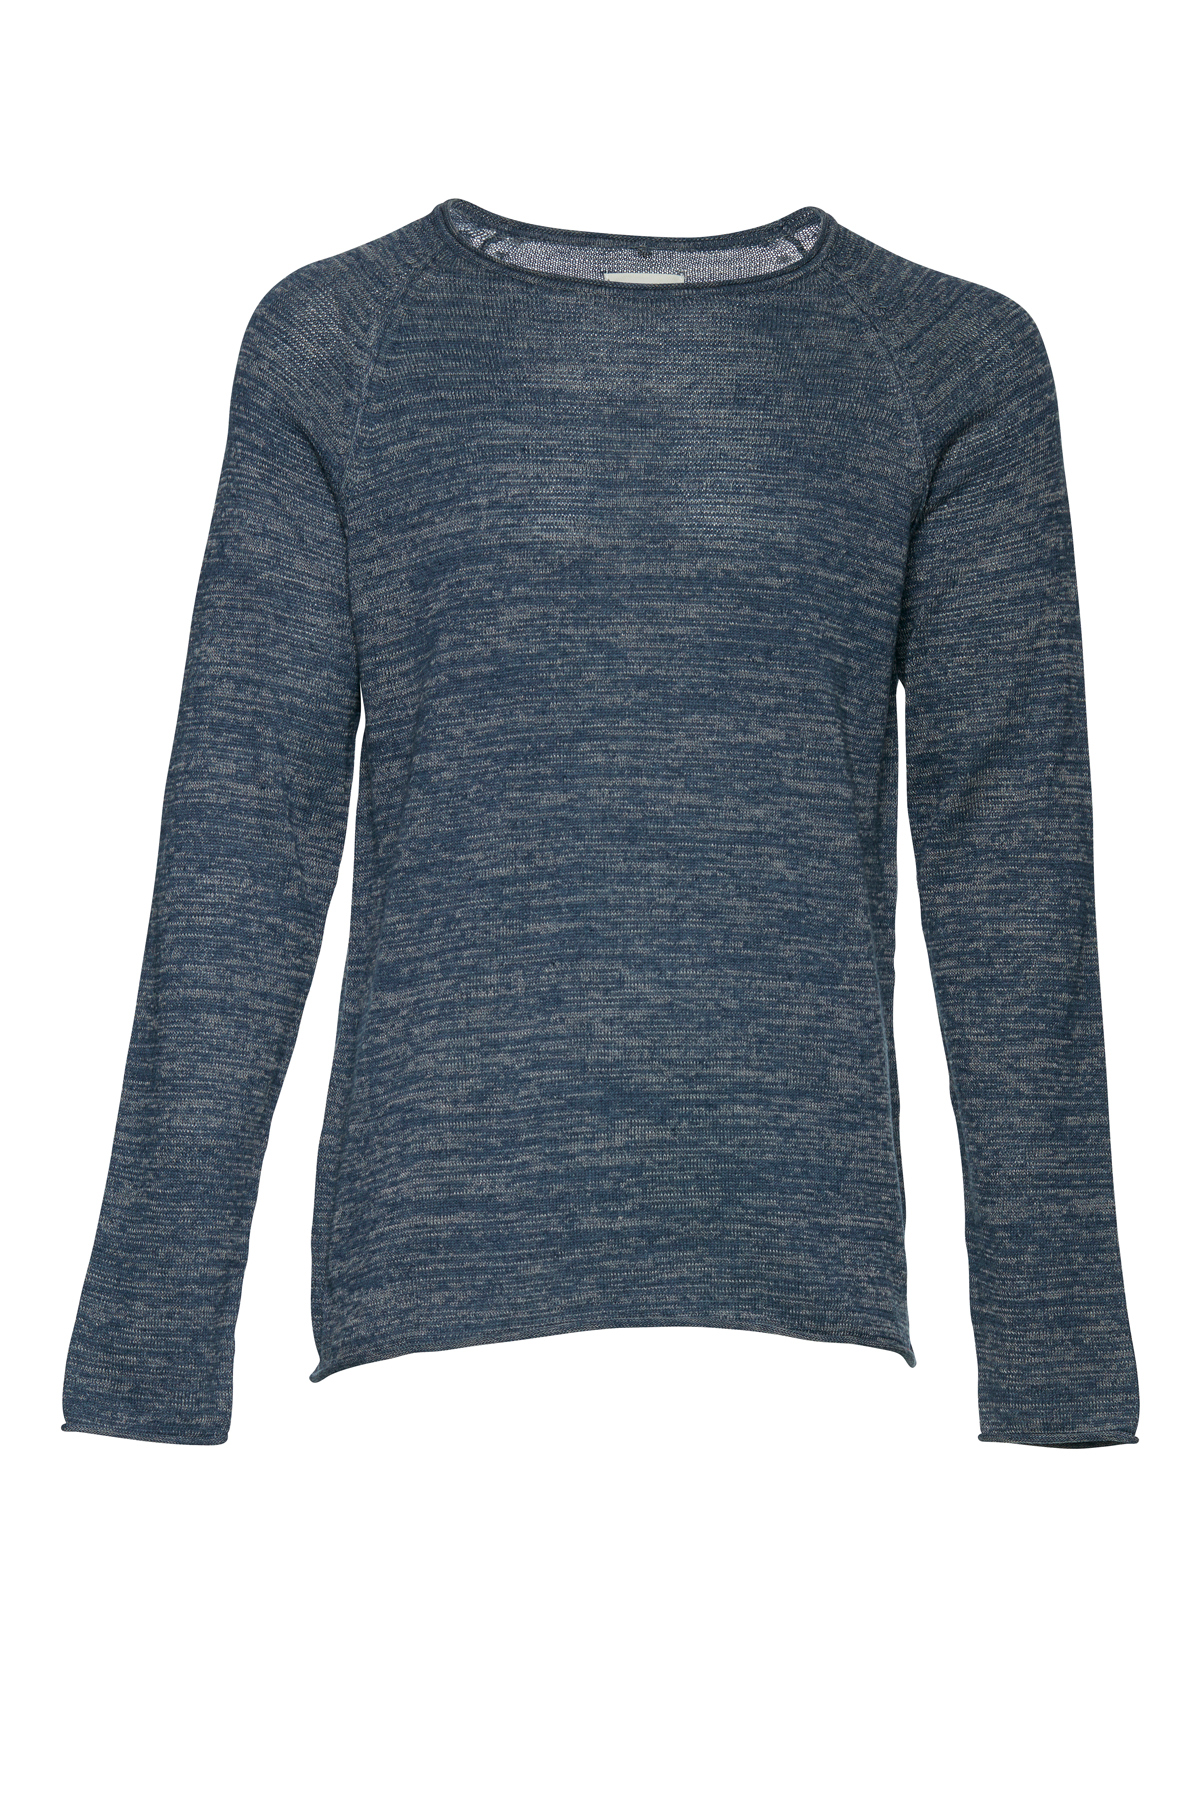 Ensign blue Knitted pullover fra Blend He – Køb Ensign blue Knitted pullover fra str. S-XXL her